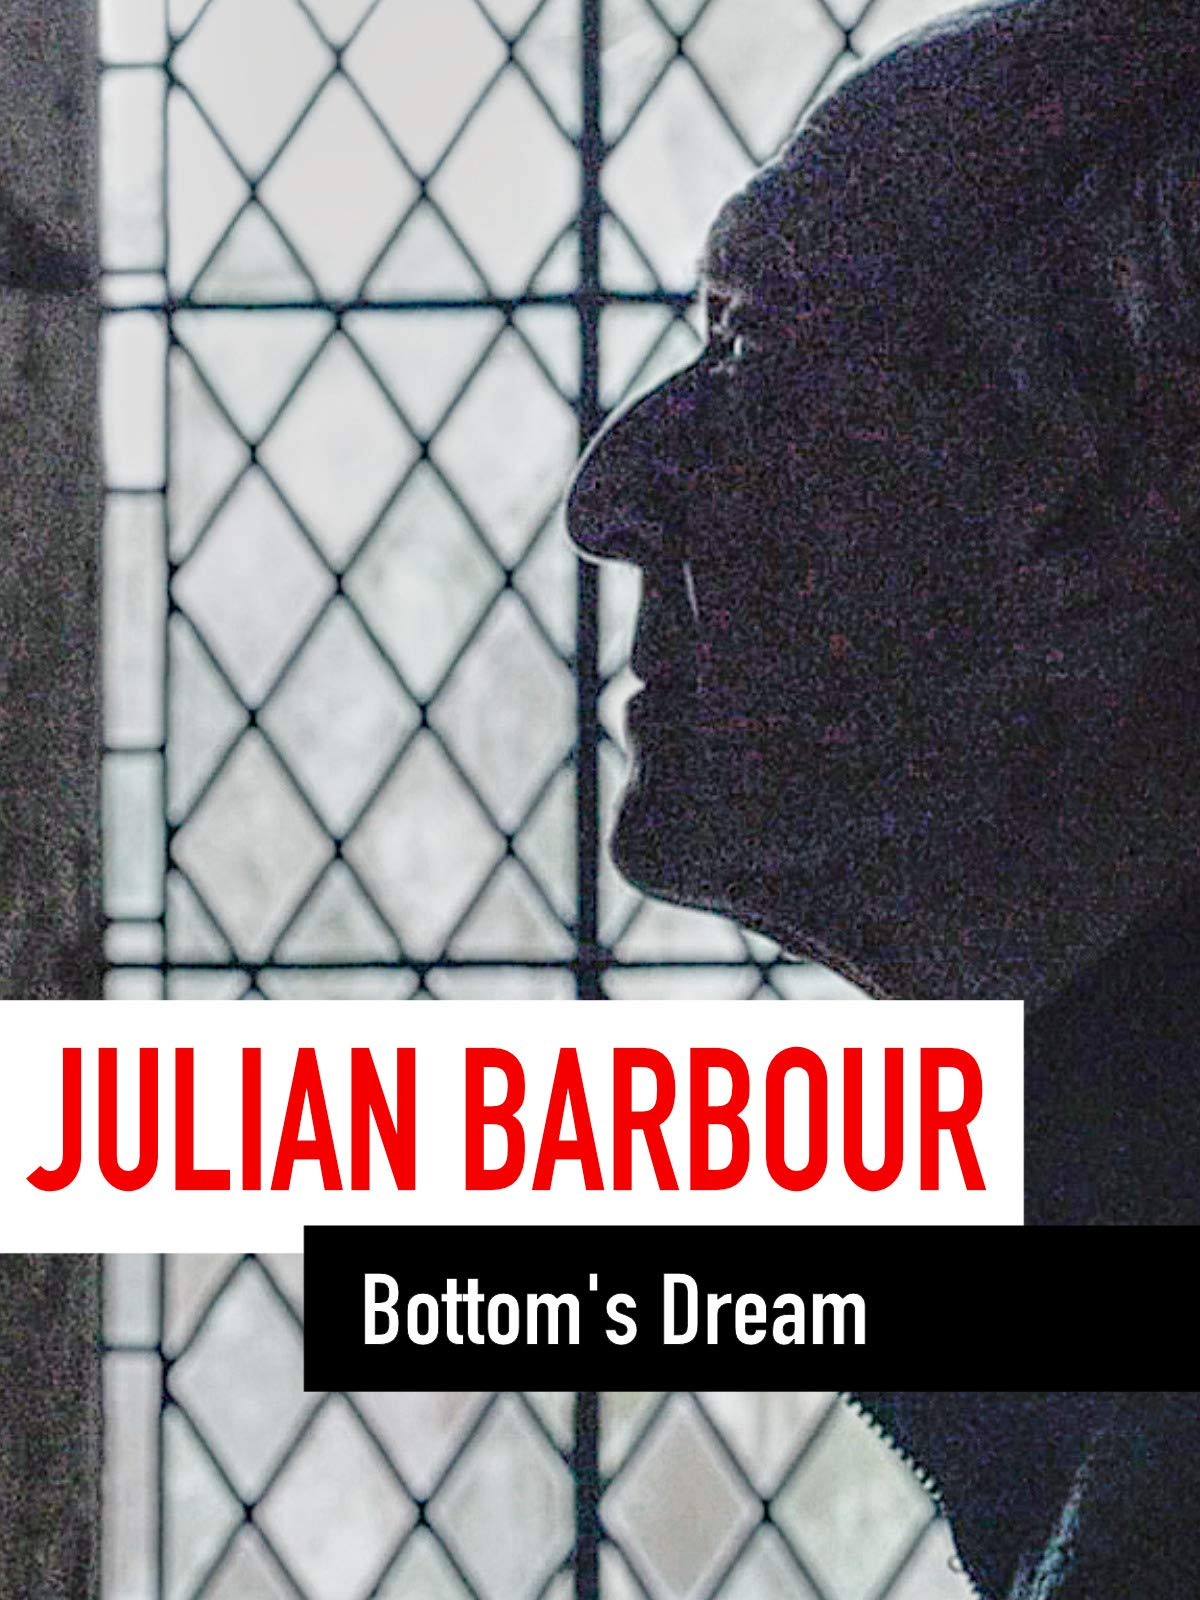 Julian Barbour - Bottom's Dream on Amazon Prime Instant Video UK